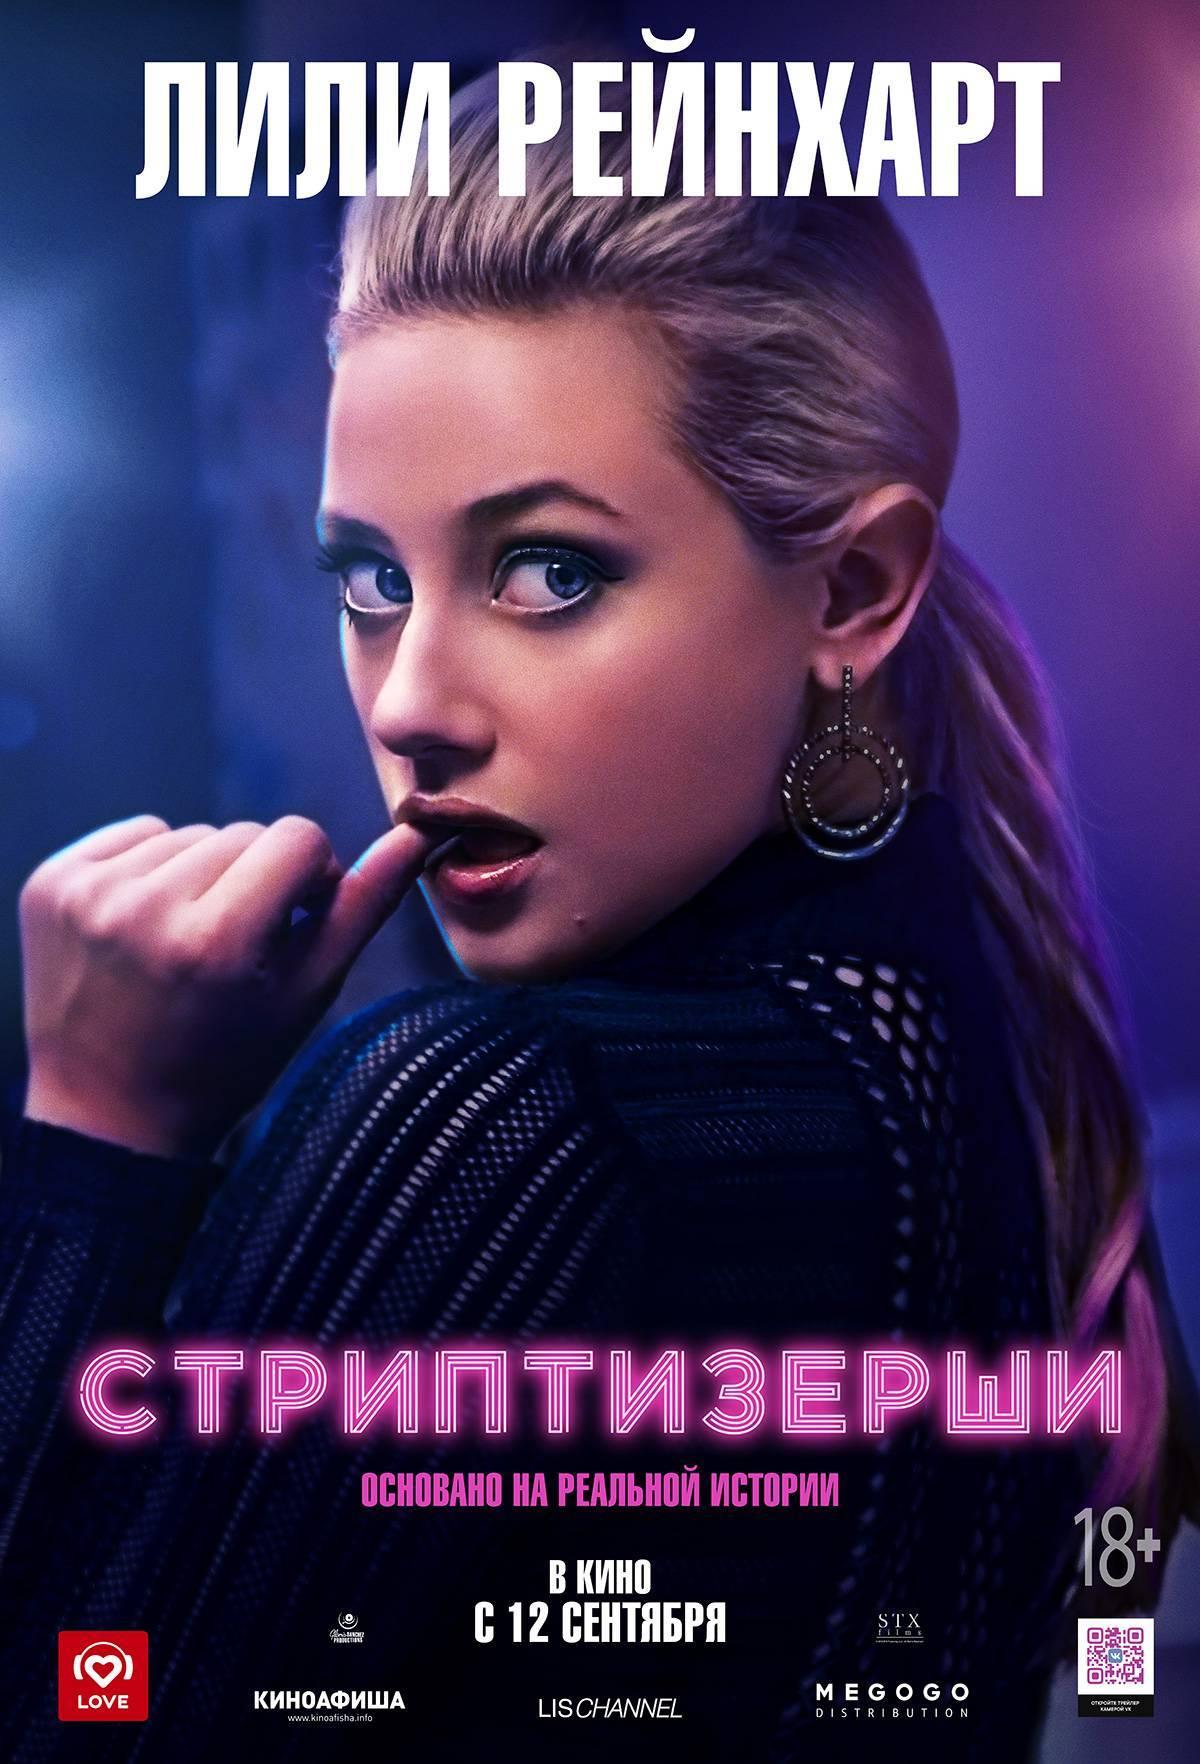 Стриптизёрши (2019) web-dlrip (avi)